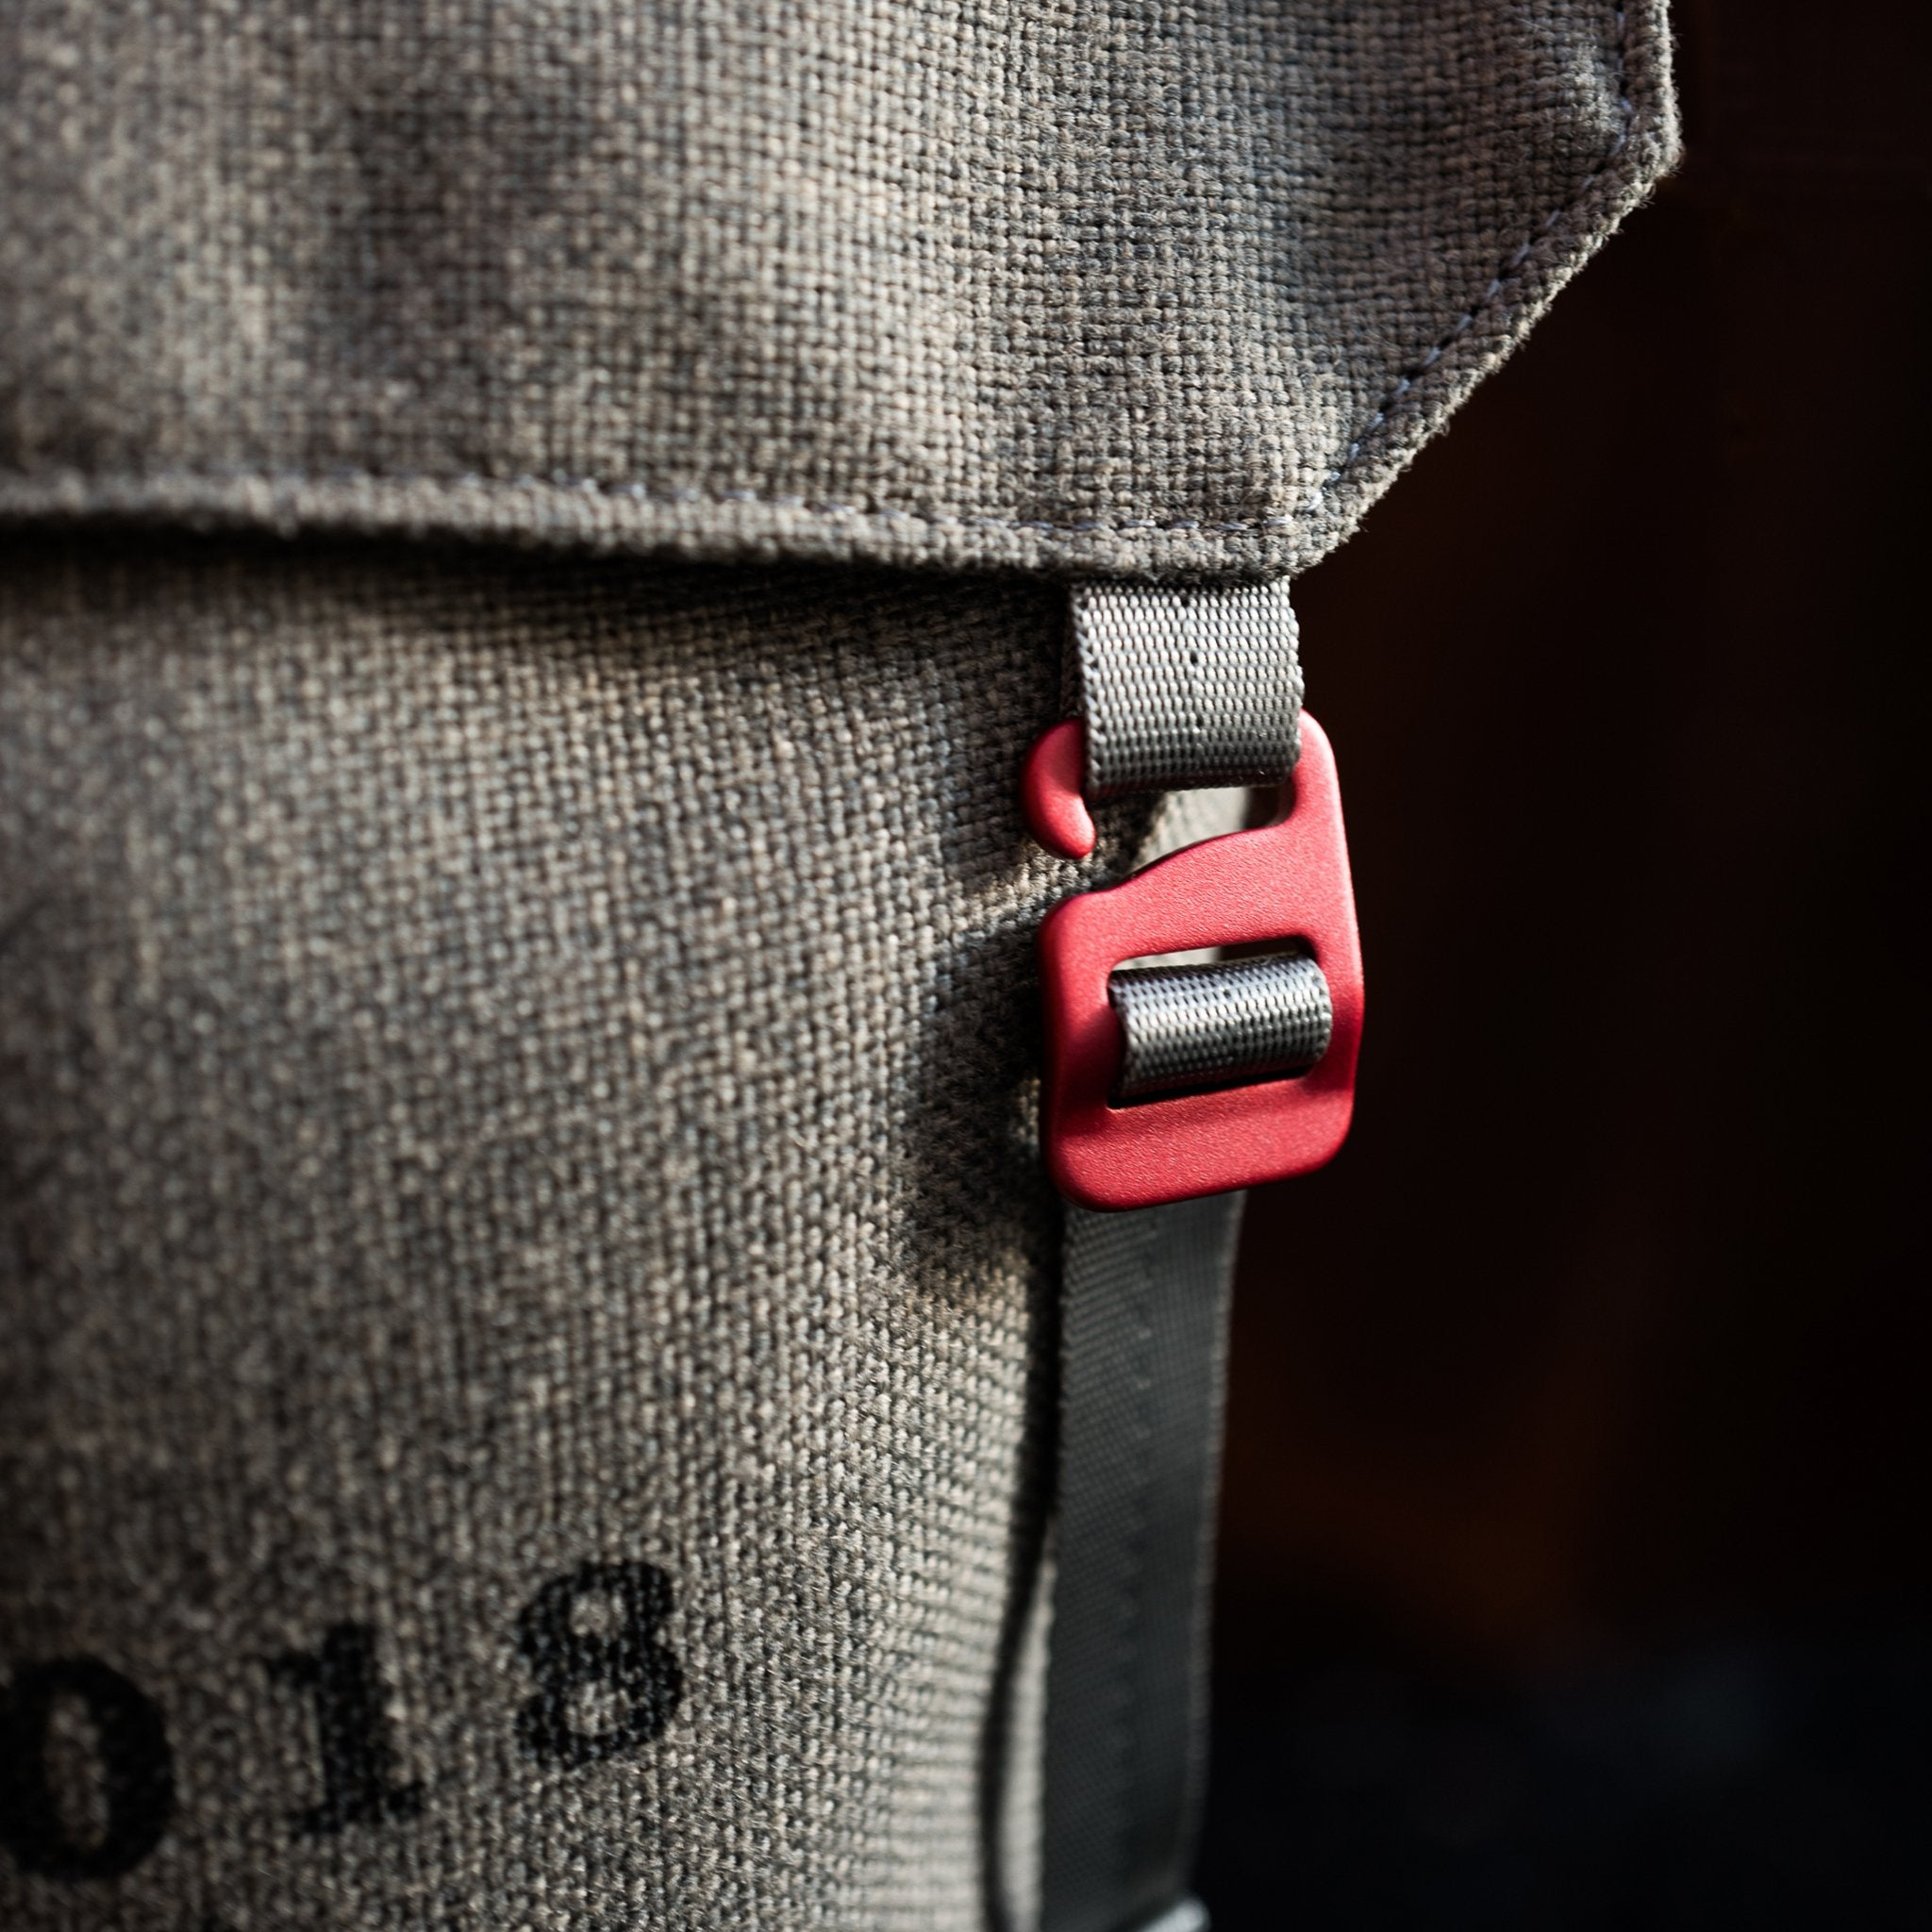 Close-up of red anodized aluminum clip on a Fierce Hazel convertible small messenger bag made with sustainable fabric. Functional, rugged and water-resistant it is military styled but beautiful